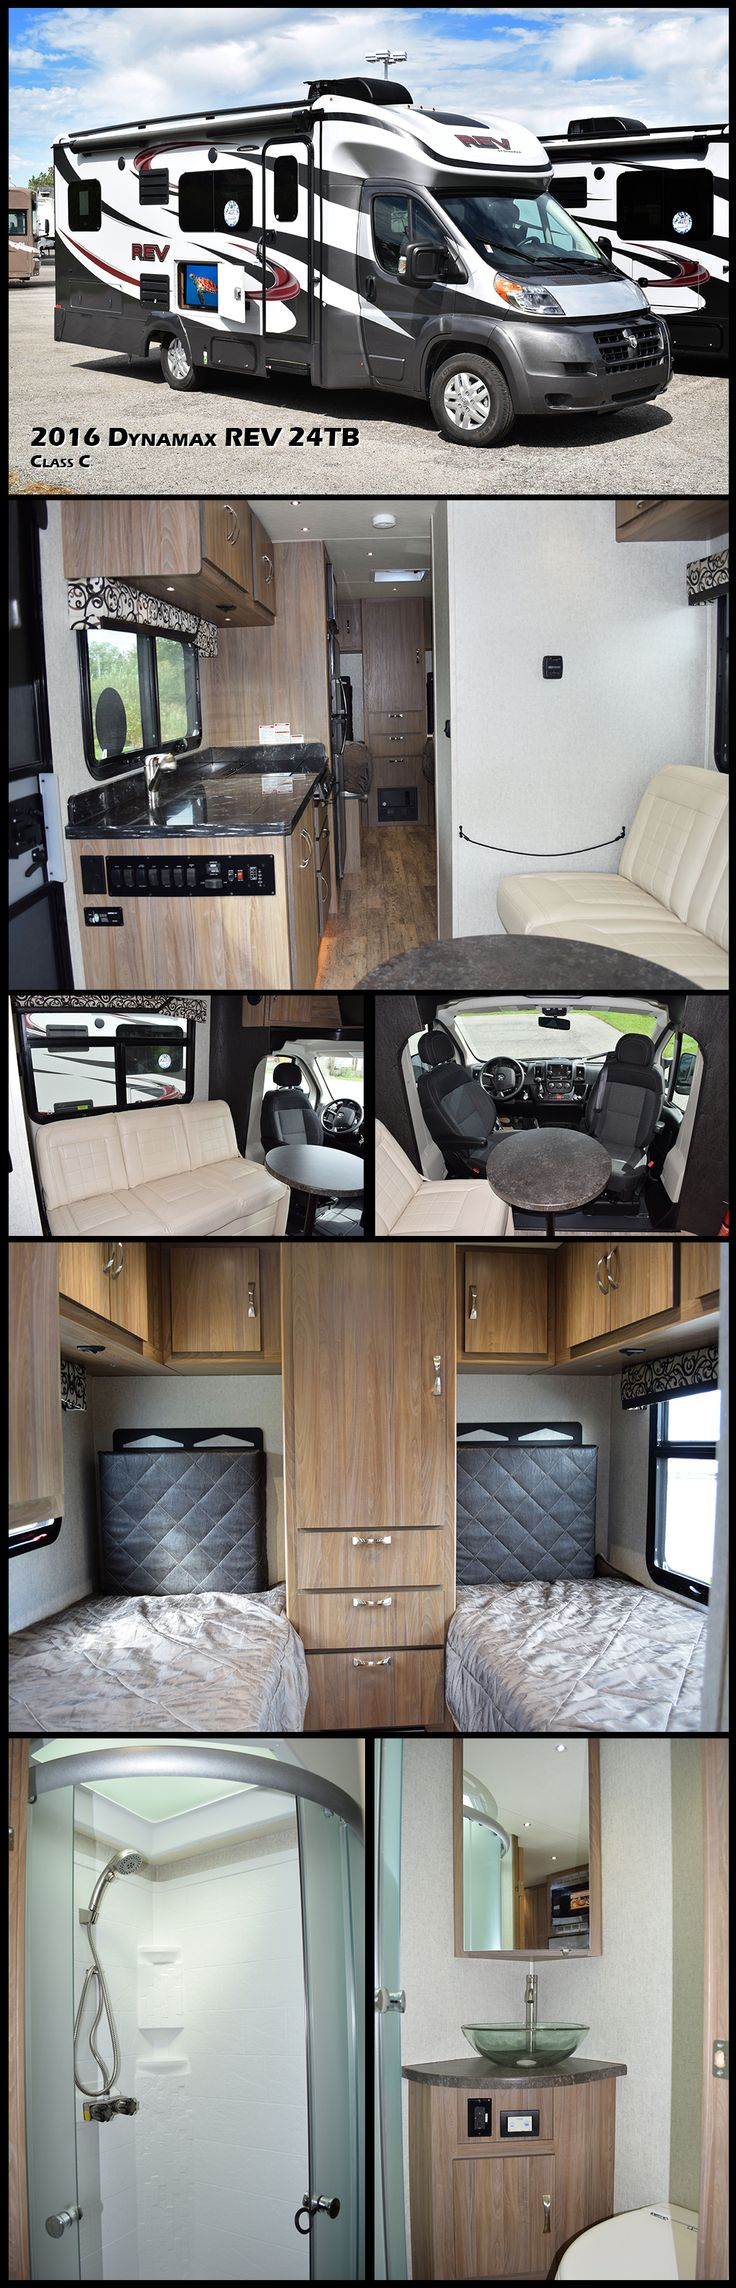 Small class c rv models quotes - The 2016 Dynamax Rev 24tb Is A Do More Carry More Enjoy More Class